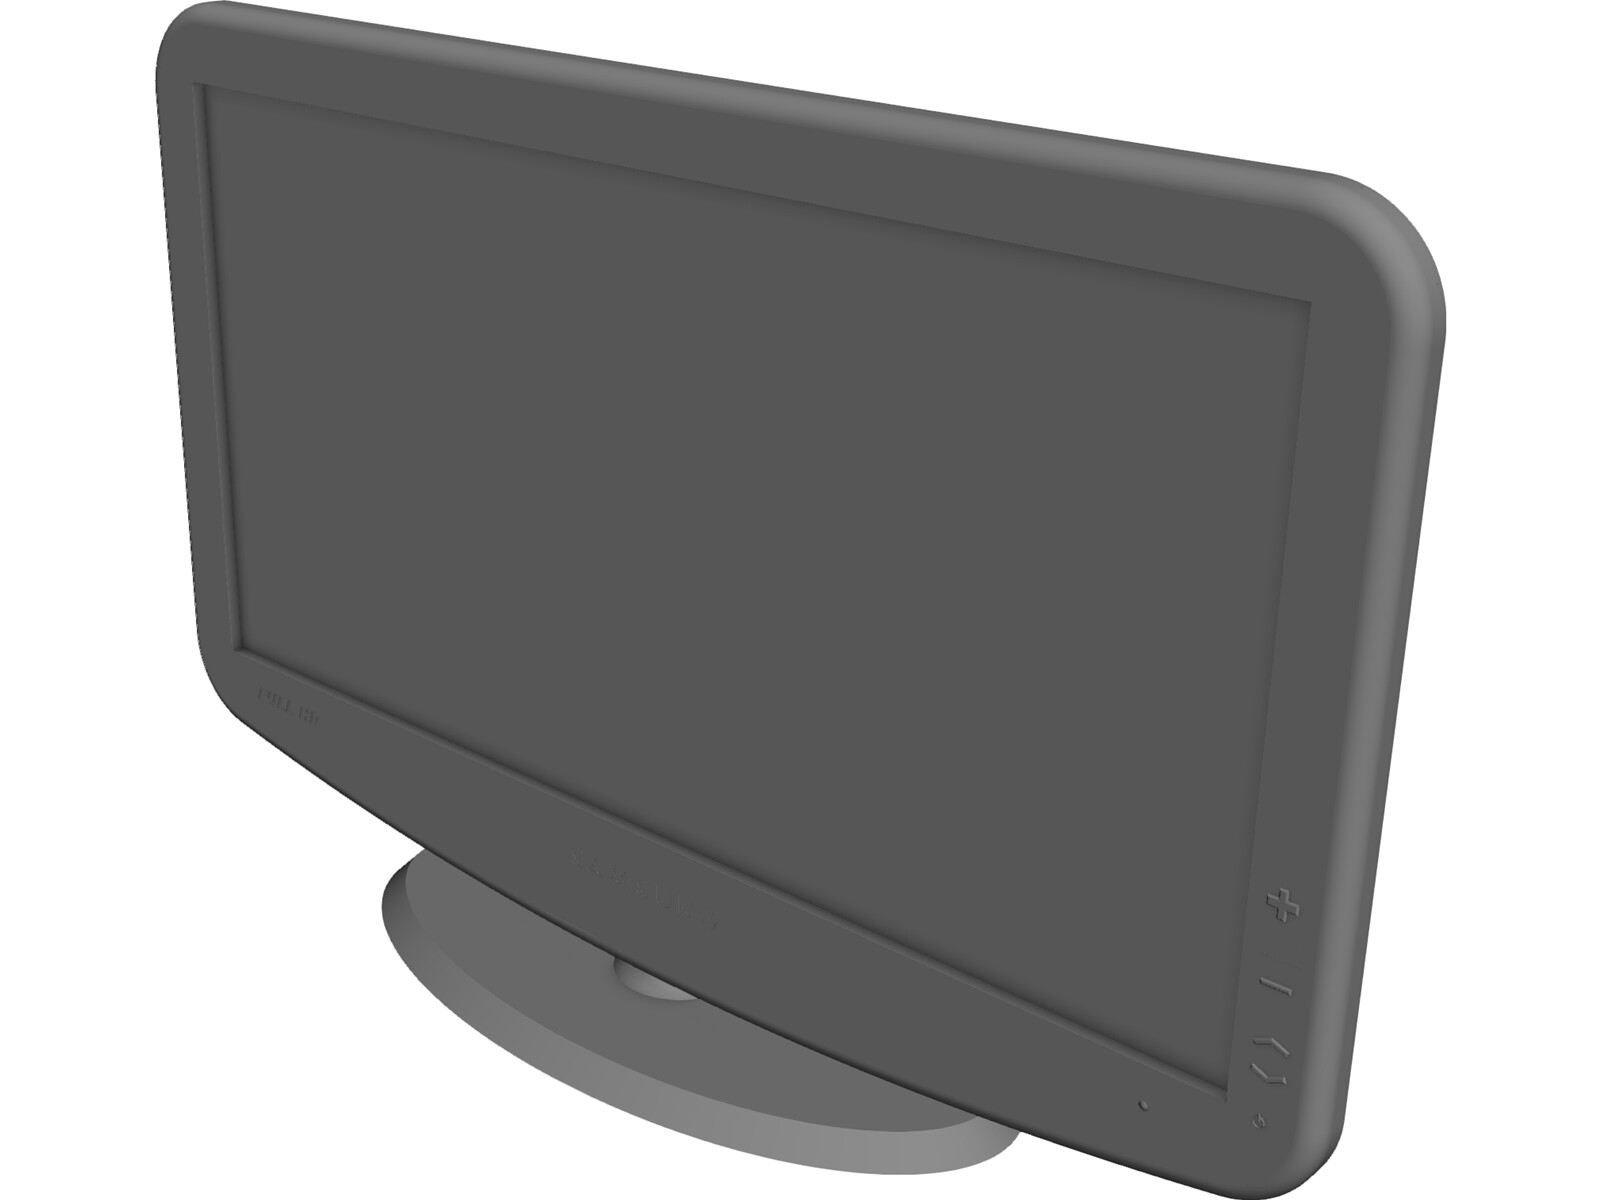 "Samsung TV 40"" 3D CAD Model"